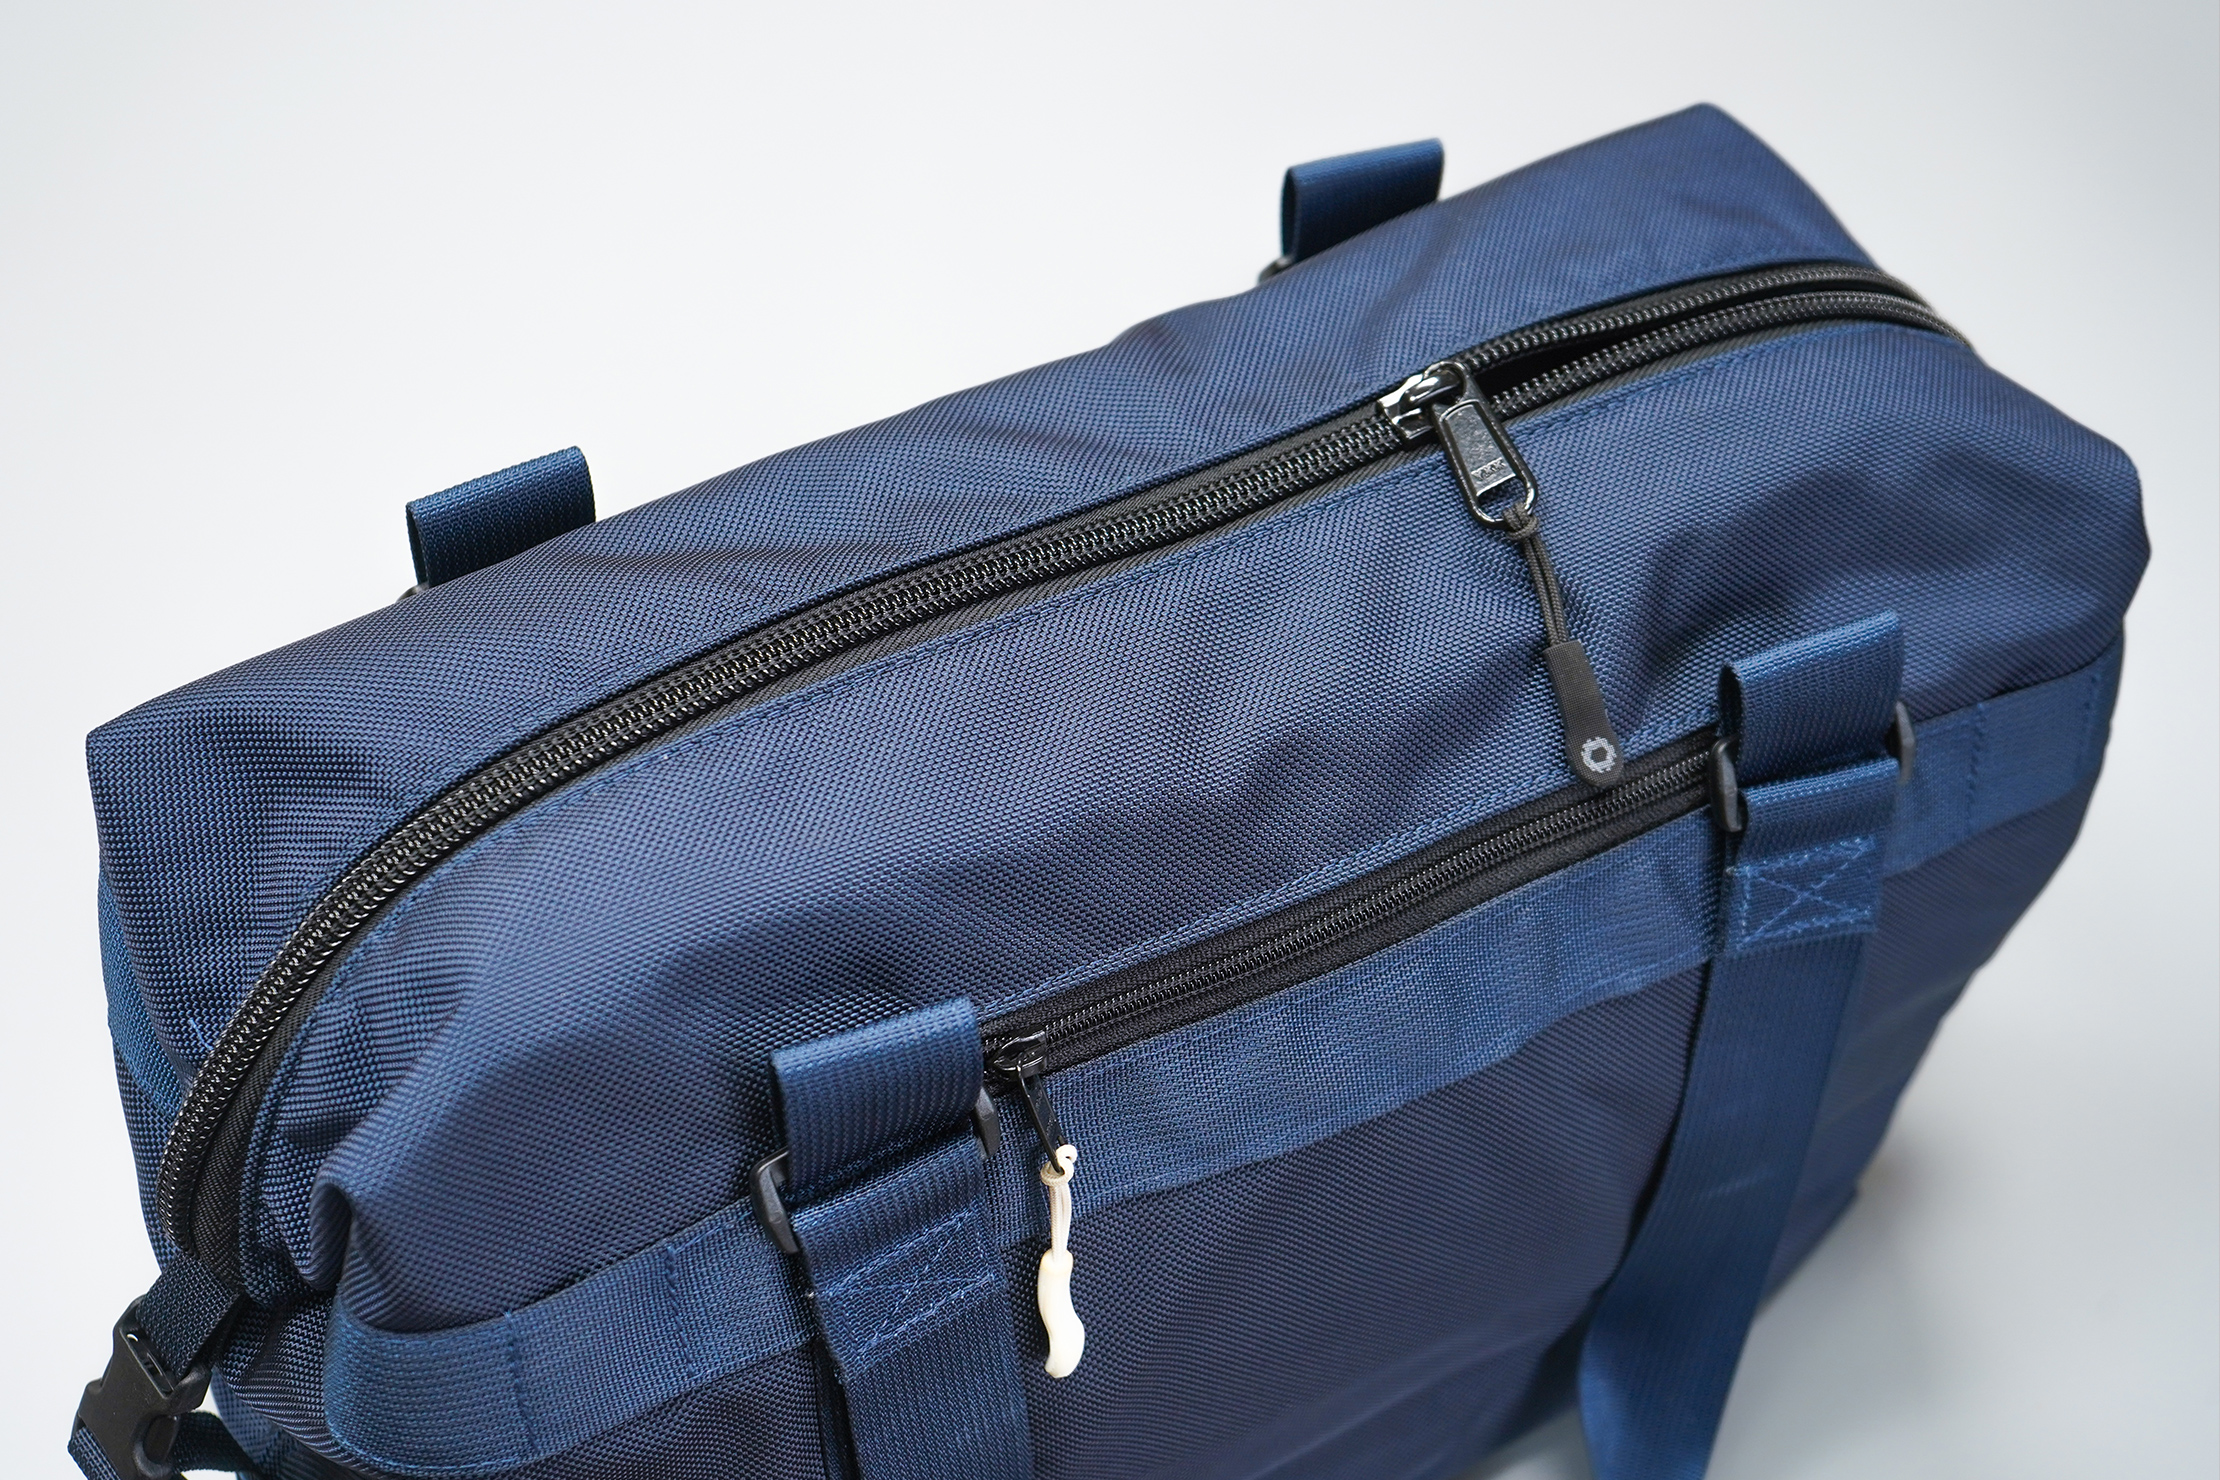 DSPTCH Utility Tote | Attach the shoulder strap to any of these four mounting points